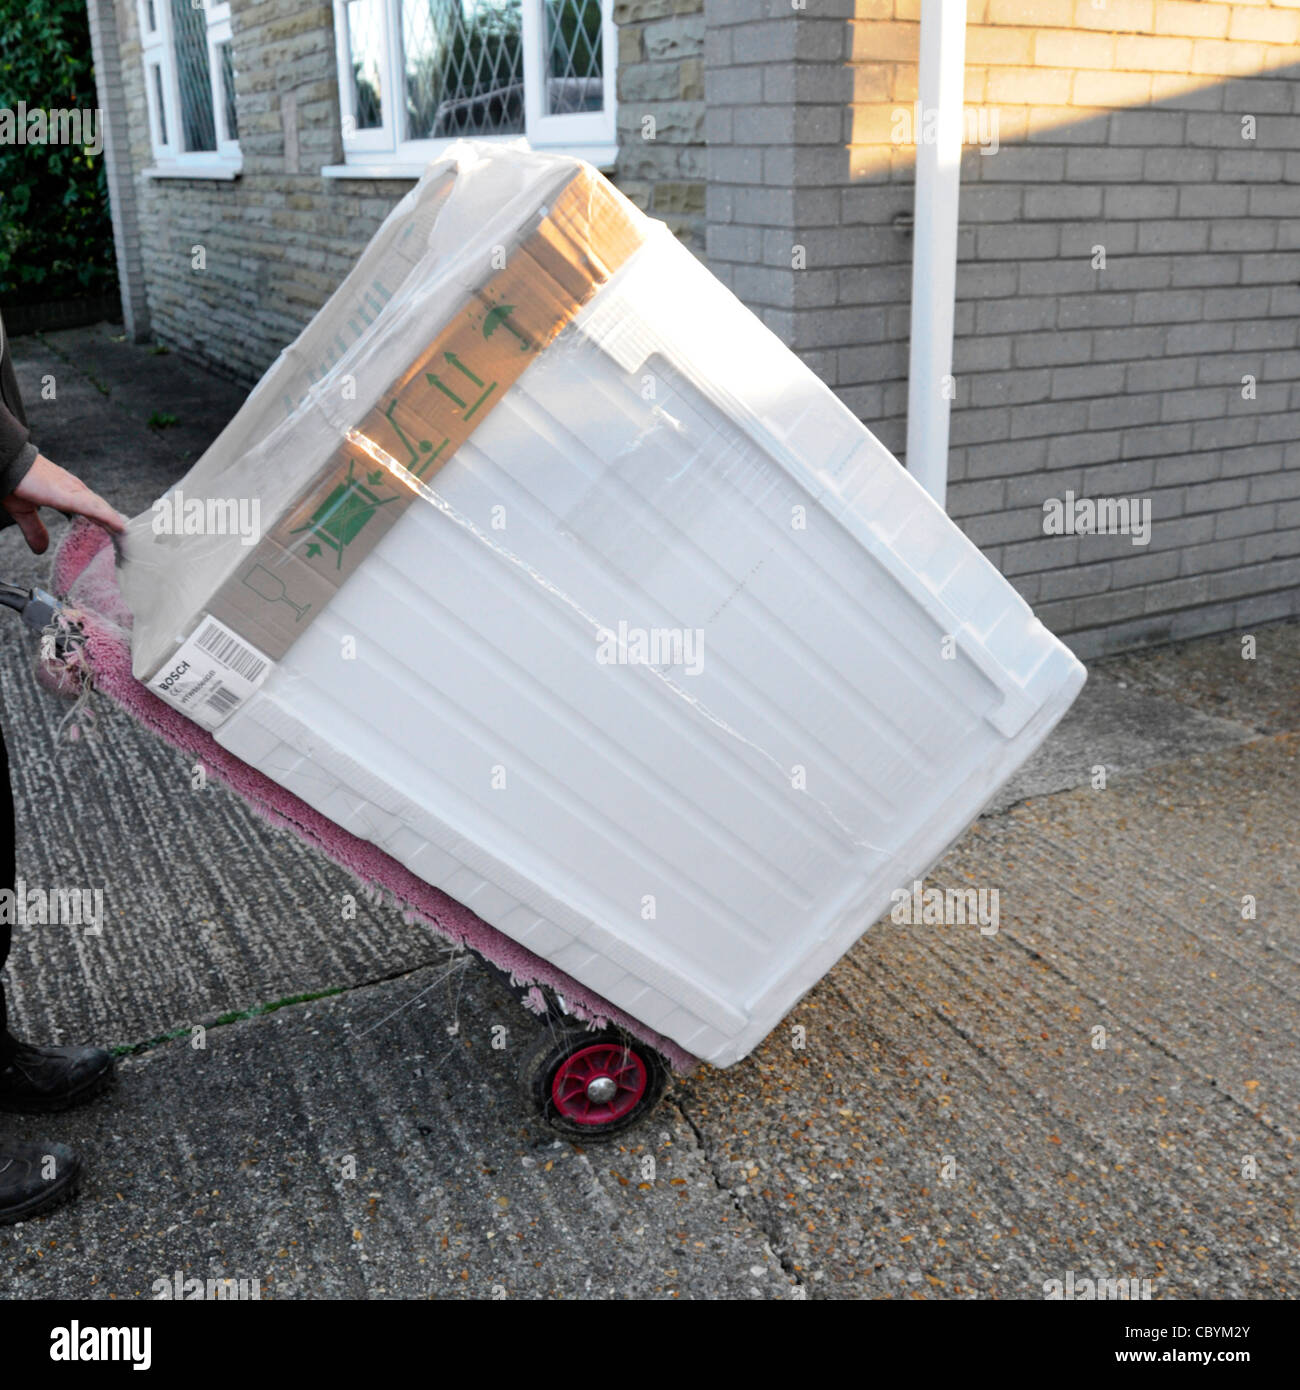 Delivery man using trolley deliver new Bosch tumble dryer from electrical appliance white goods retail supply business - Stock Image